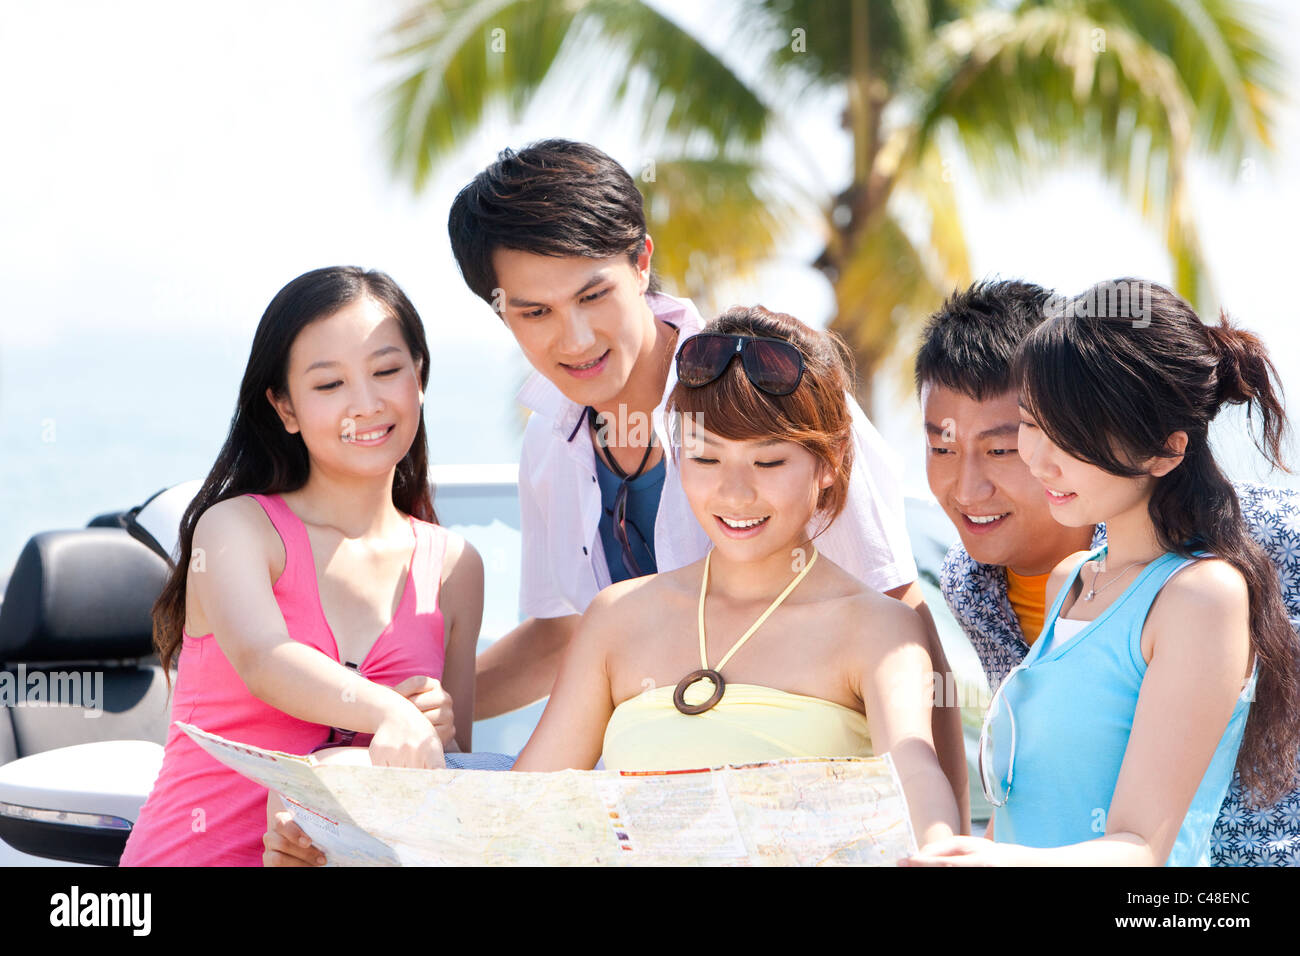 Friends Looking at a Map - Stock Image